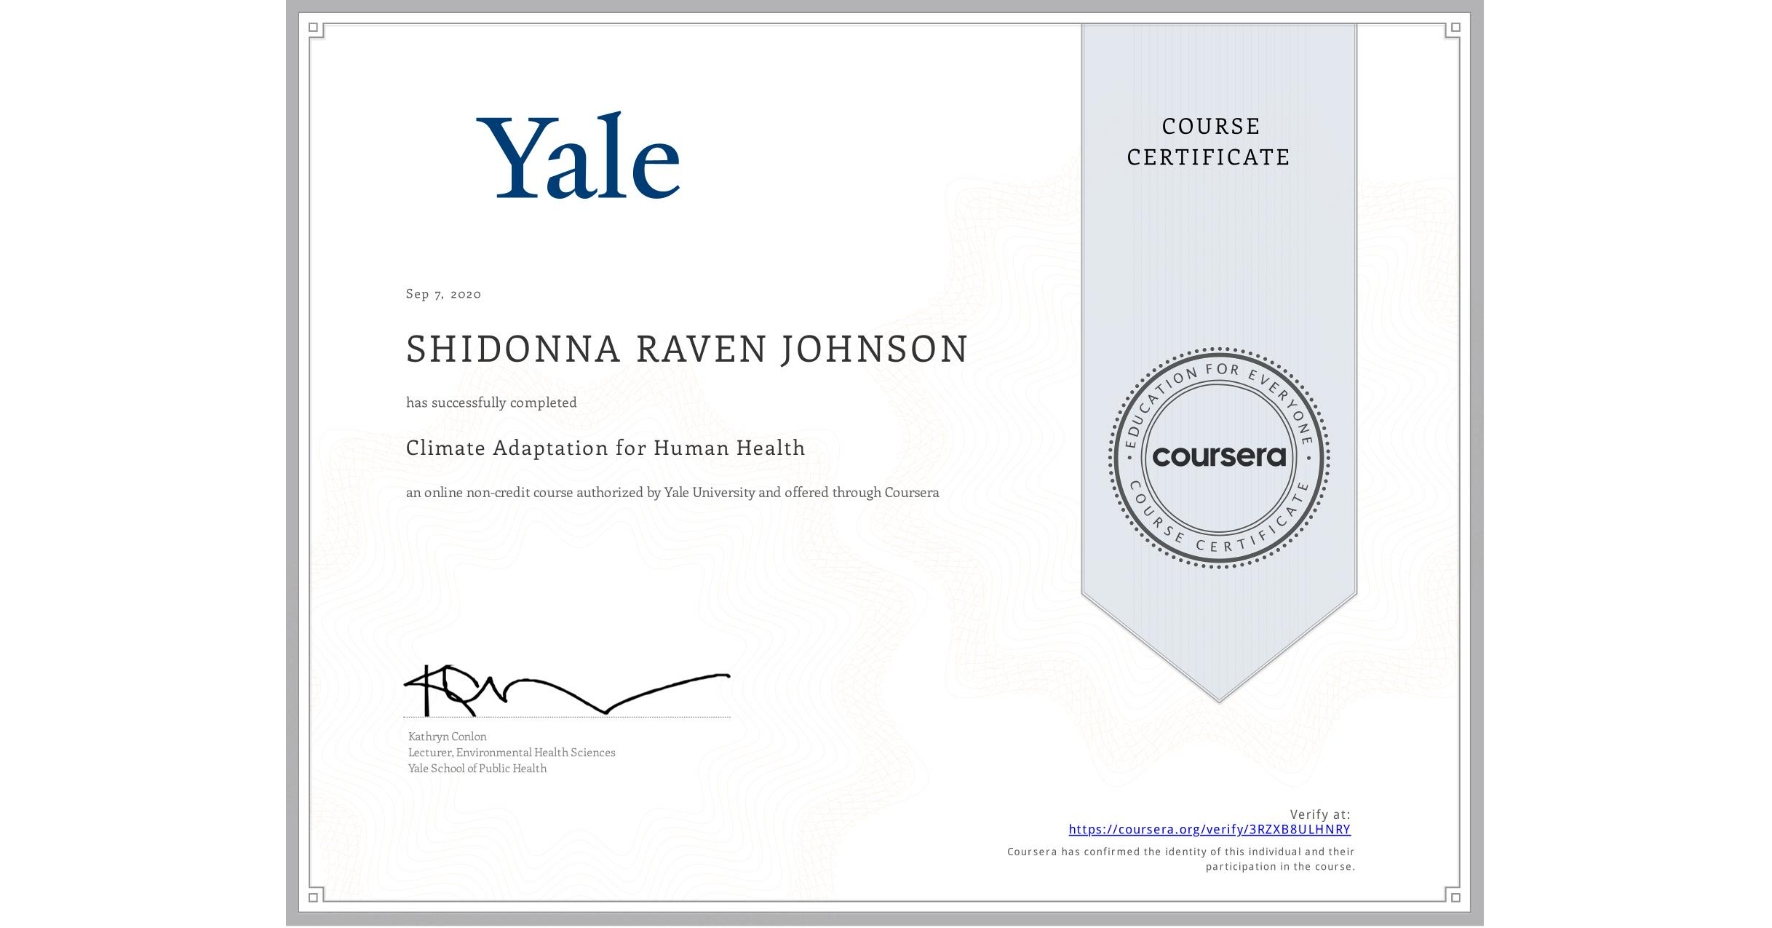 View certificate for shidonna johnson, Climate Adaptation for Human Health, an online non-credit course authorized by Yale University and offered through Coursera